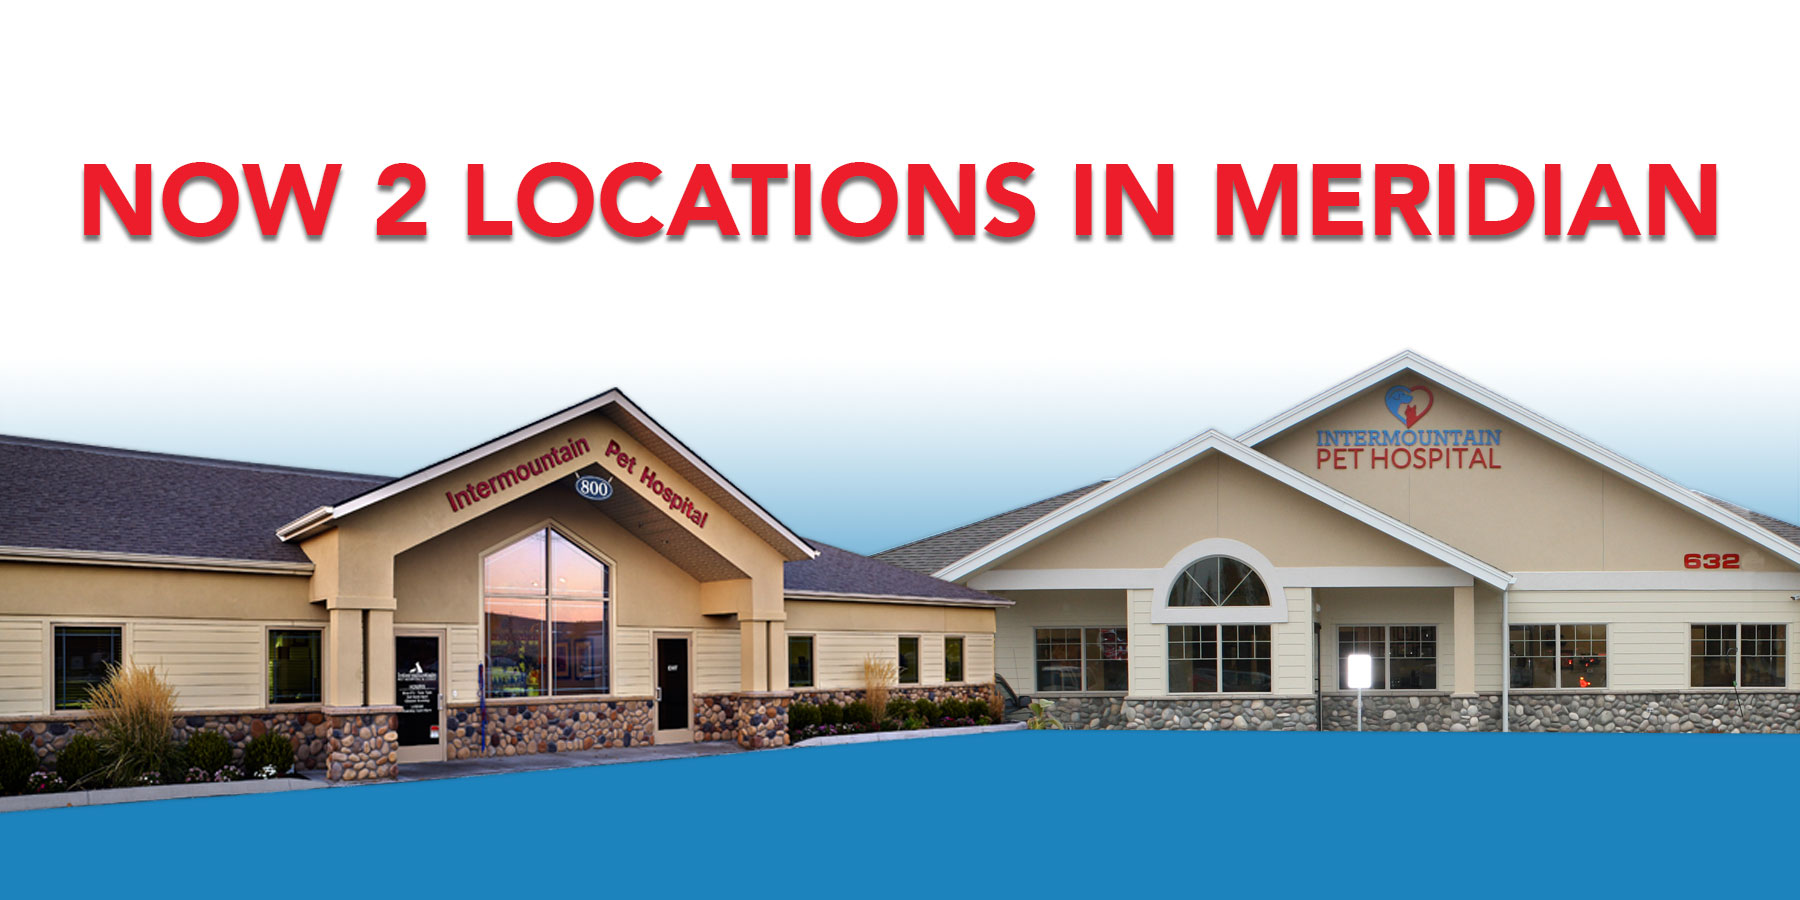 2 locations in Meridian